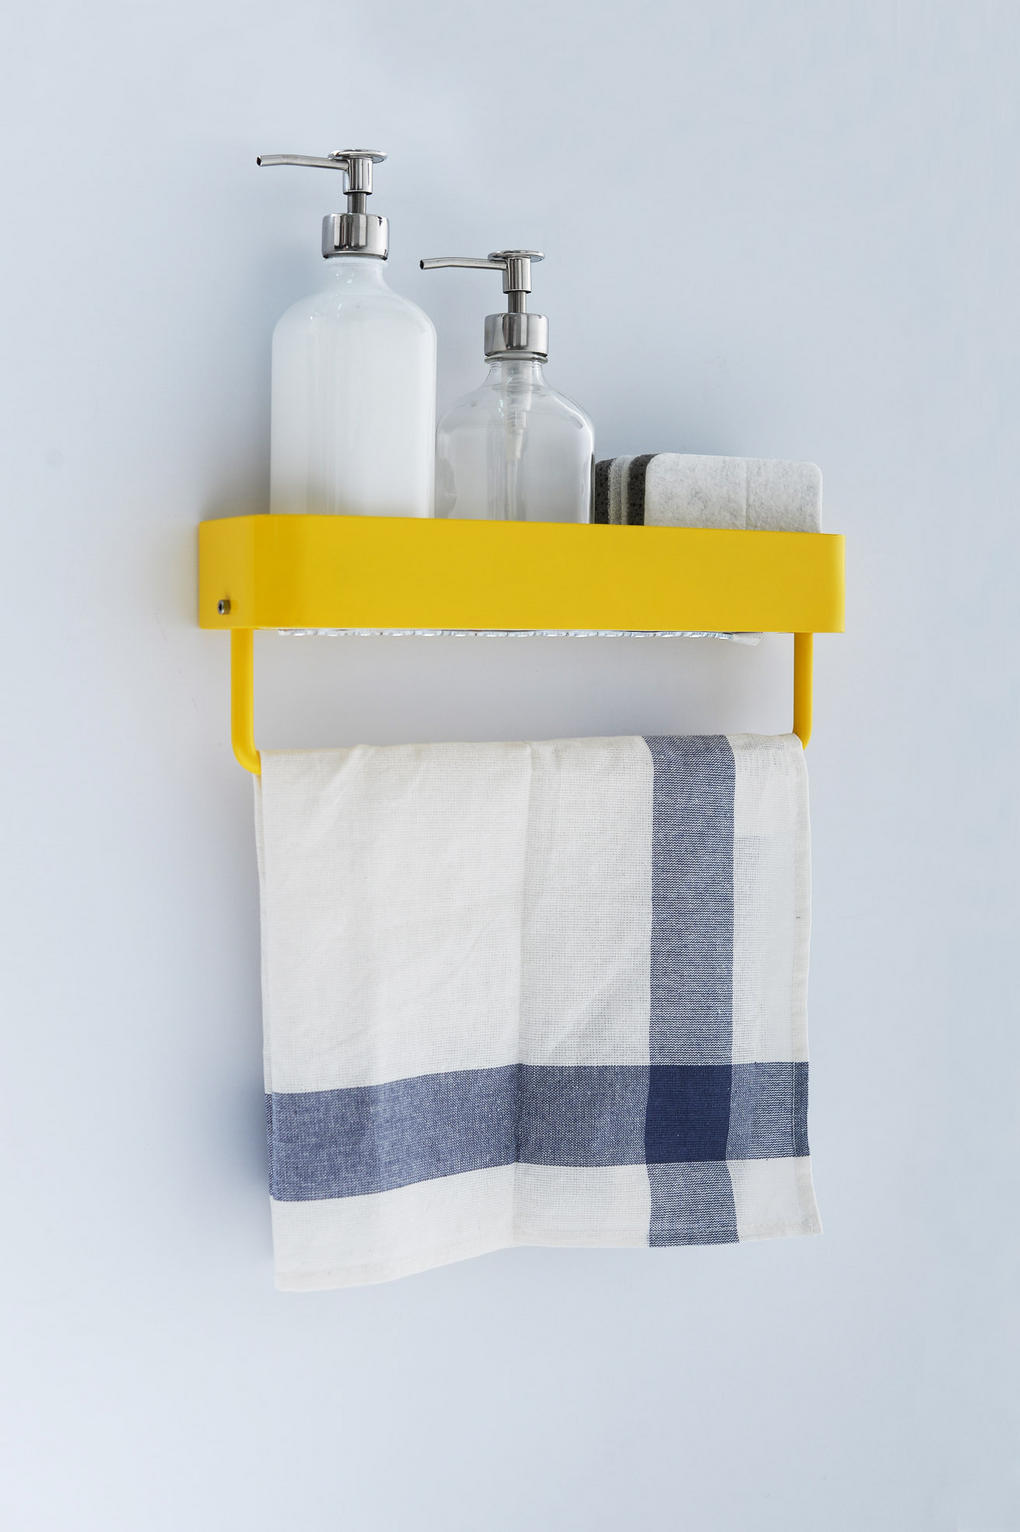 ikea-yda-second-towel-hanger